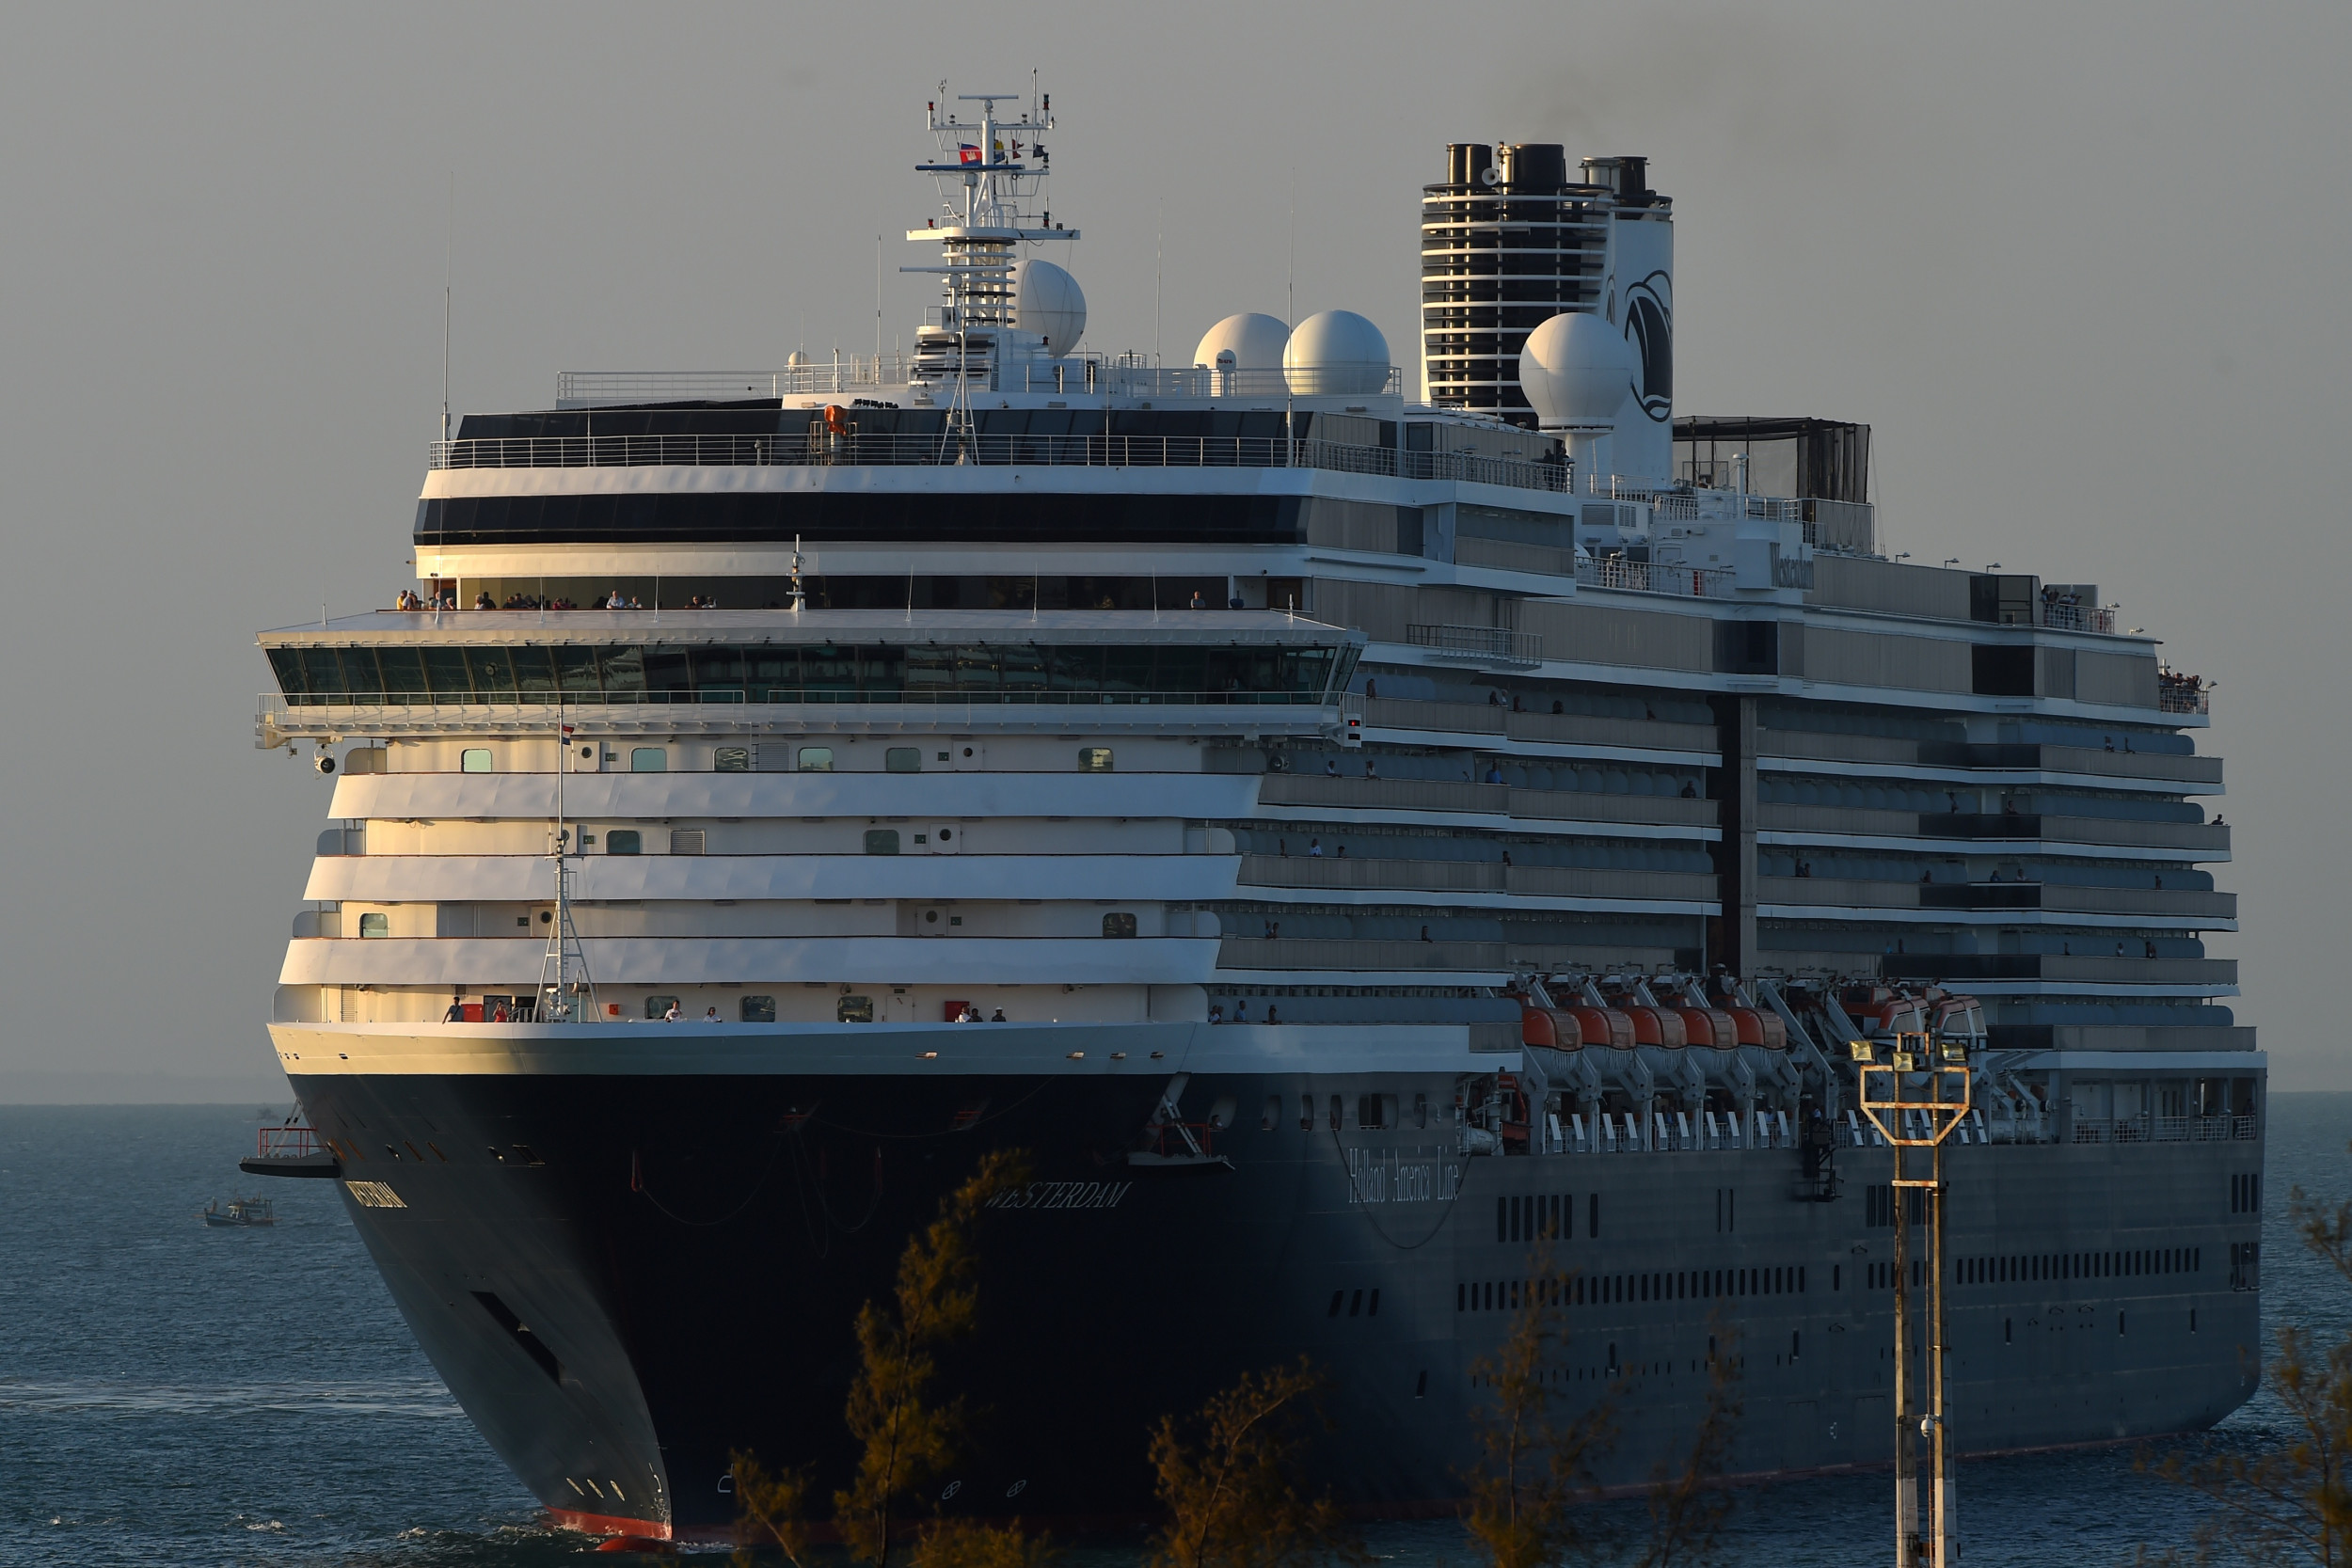 Comedian Aboard Coronavirus Cruise Ship Fired After Ditching Quarantine And Returning to US